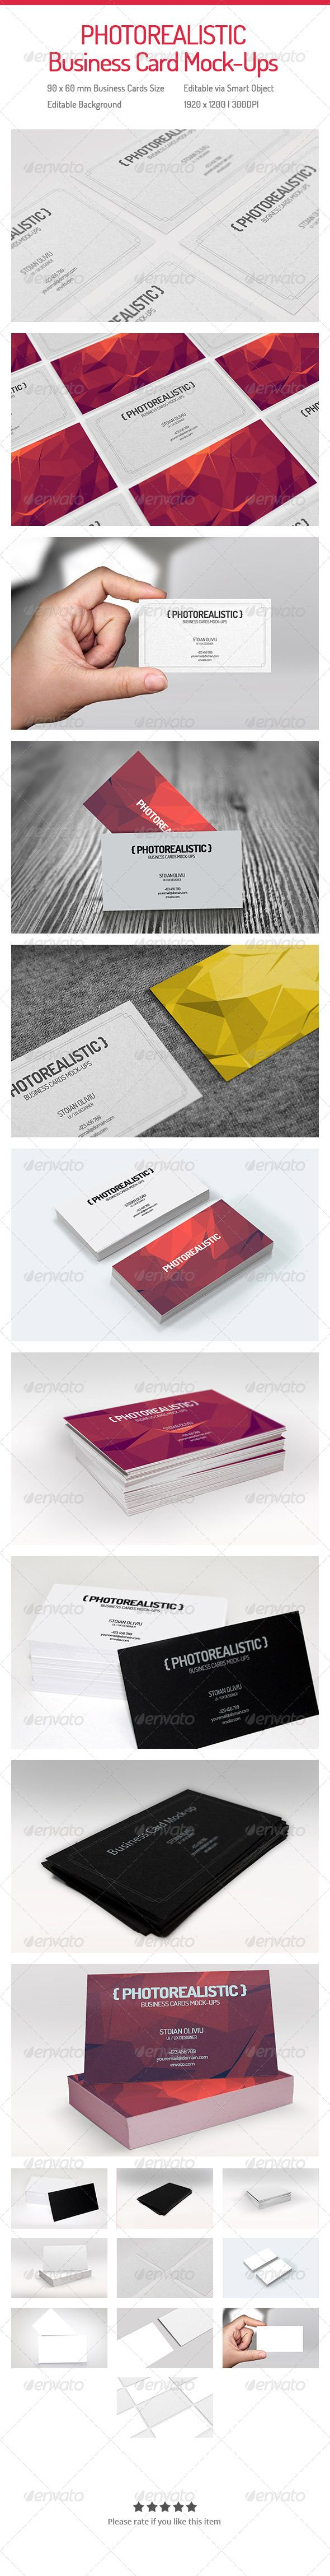 Photorealistic Business Cards Mock-ups